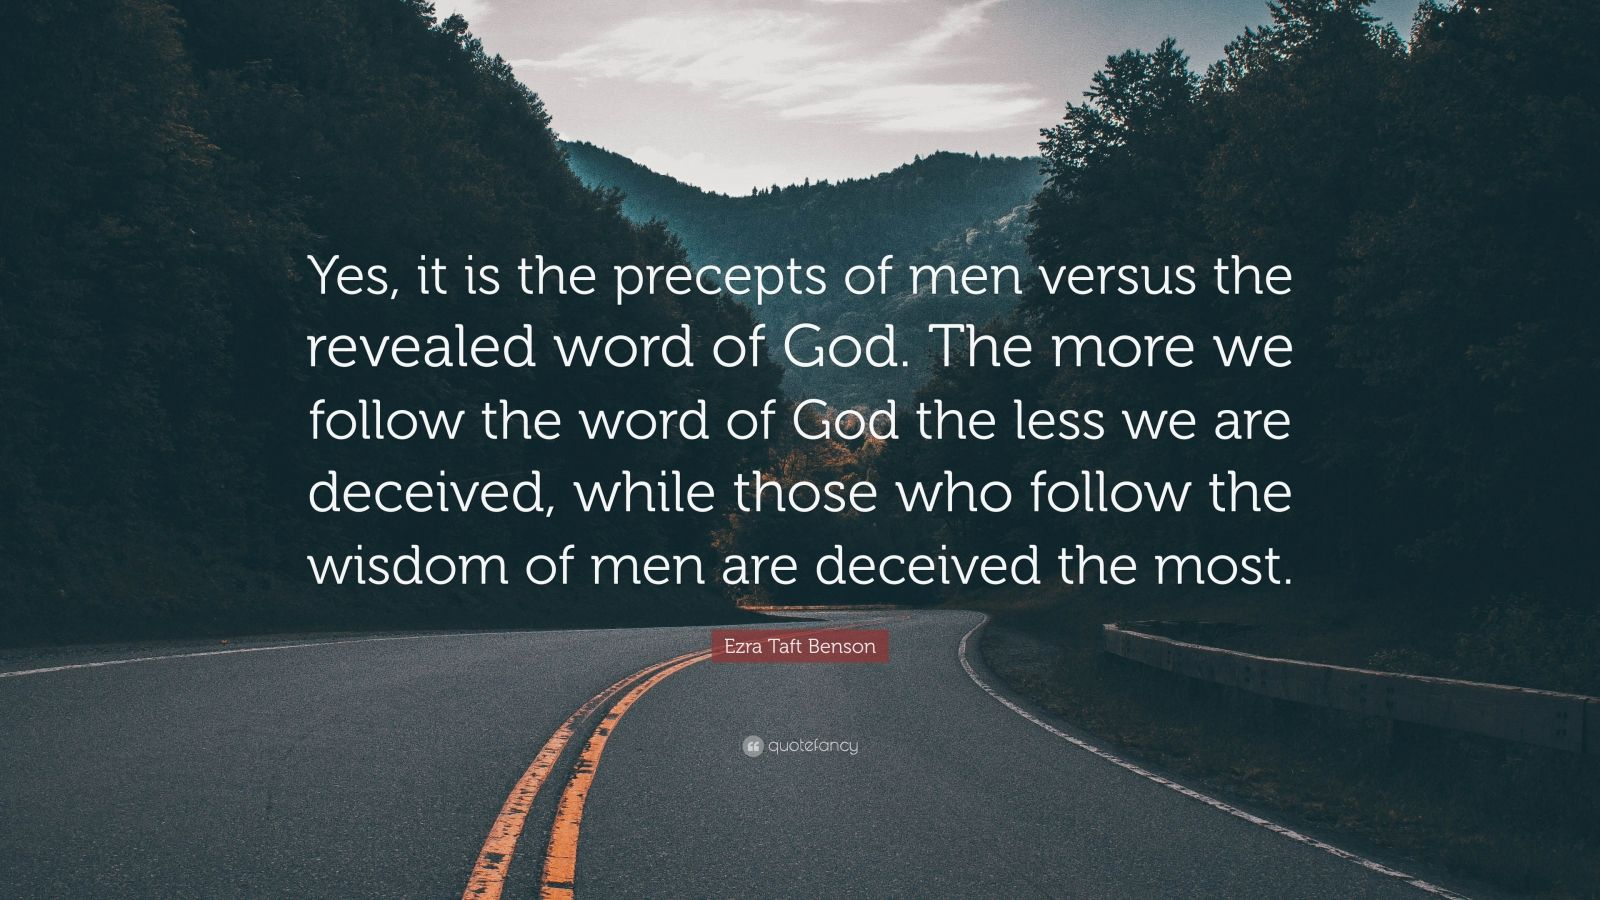 "Ezra Taft Benson Quote: ""Yes, it is the precepts of men versus the revealed word of God. The more we follow the word of God the less we are deceived, while those who follow the wisdom of men are deceived the most."""